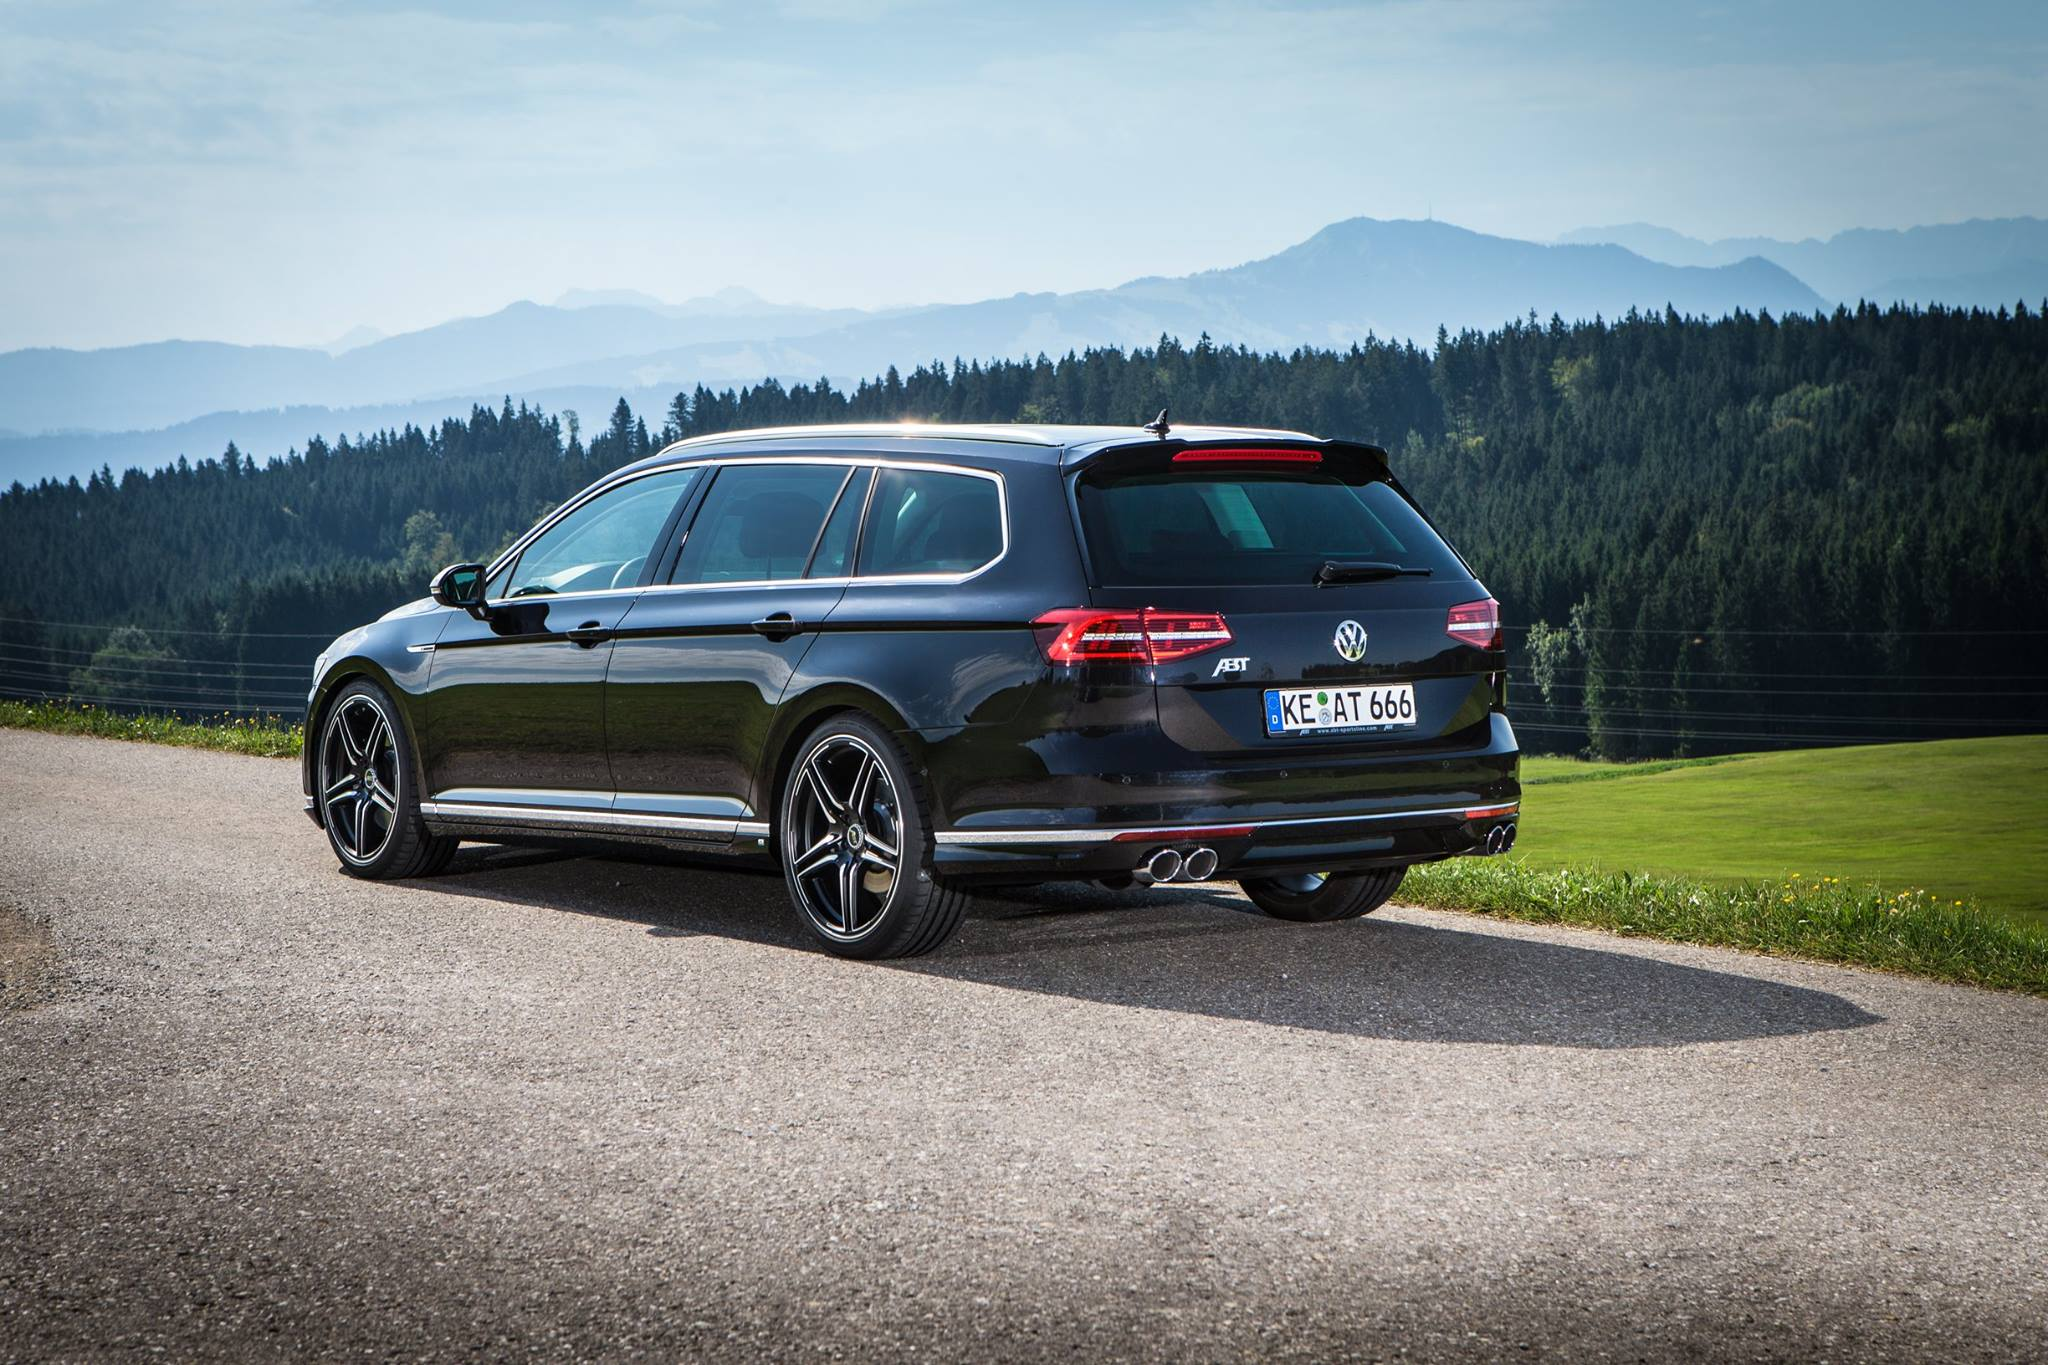 abt has 7 power kits for the new vw passat sedan and wagon autoevolution. Black Bedroom Furniture Sets. Home Design Ideas